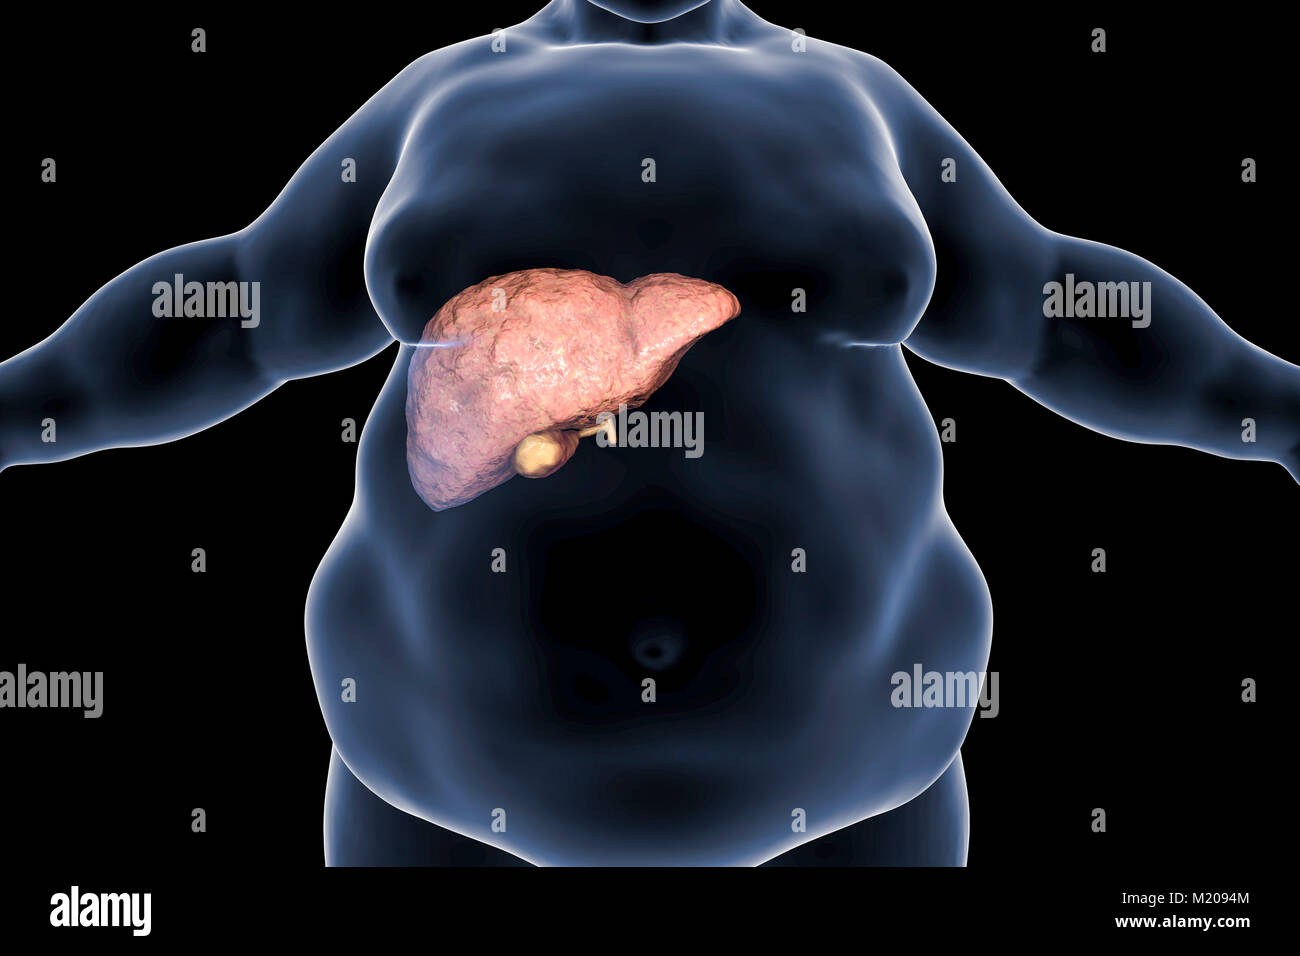 Fatty liver in obese person, conceptual illustration. Fatty liver is commonly associated with alcohol or metabolic - Stock Image